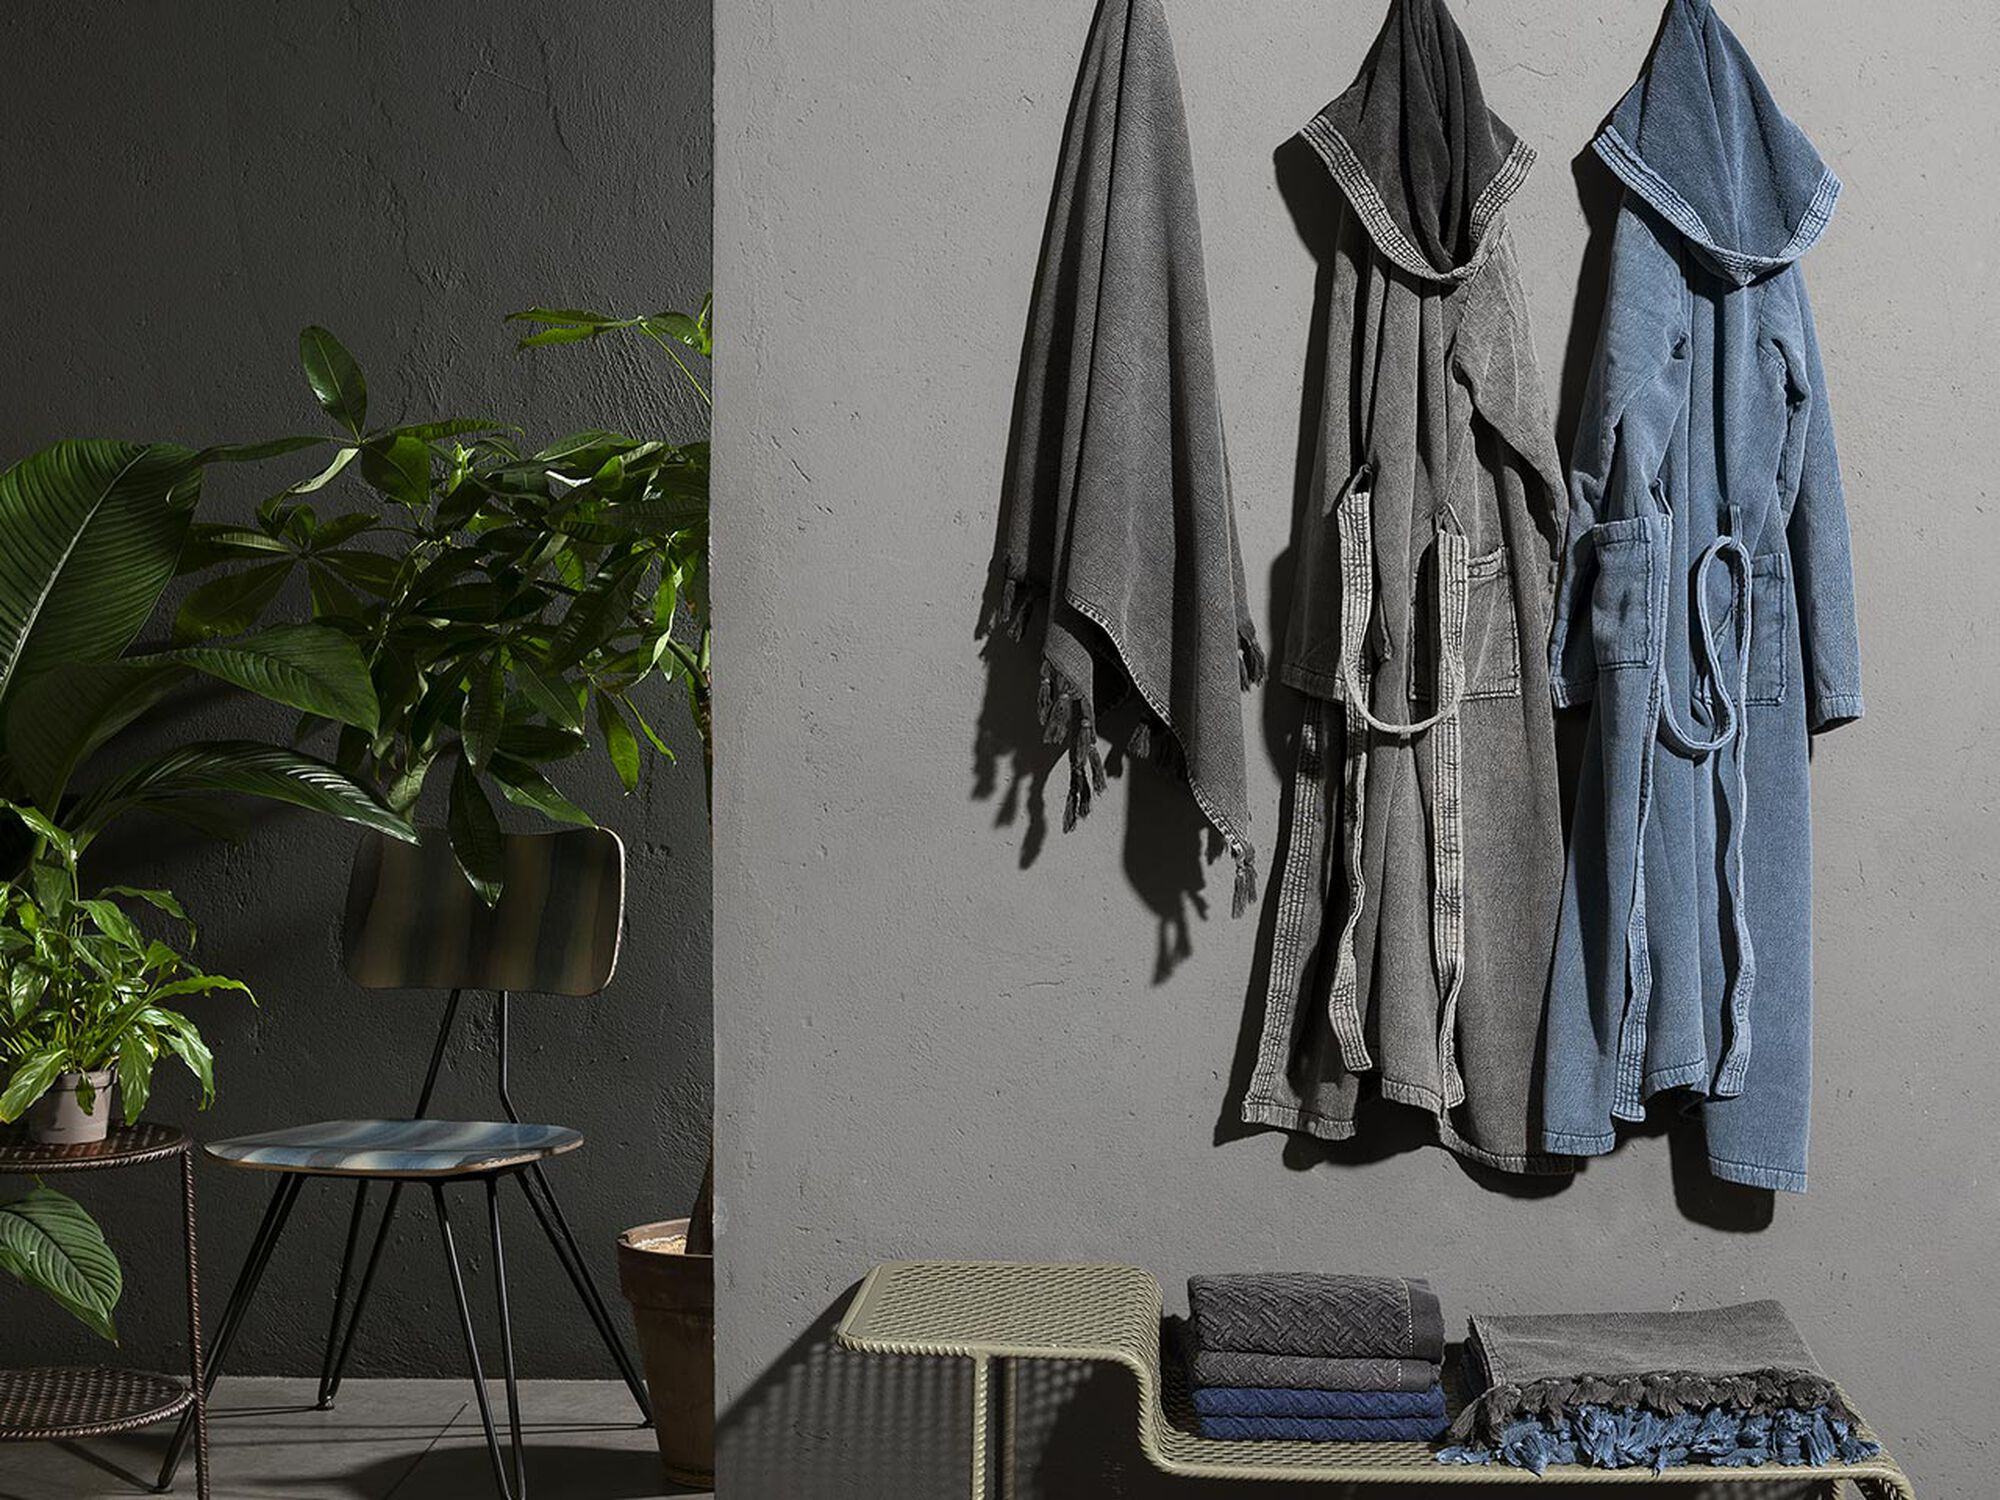 SOFT DENIM Mirabello for Diesel - Home Textile